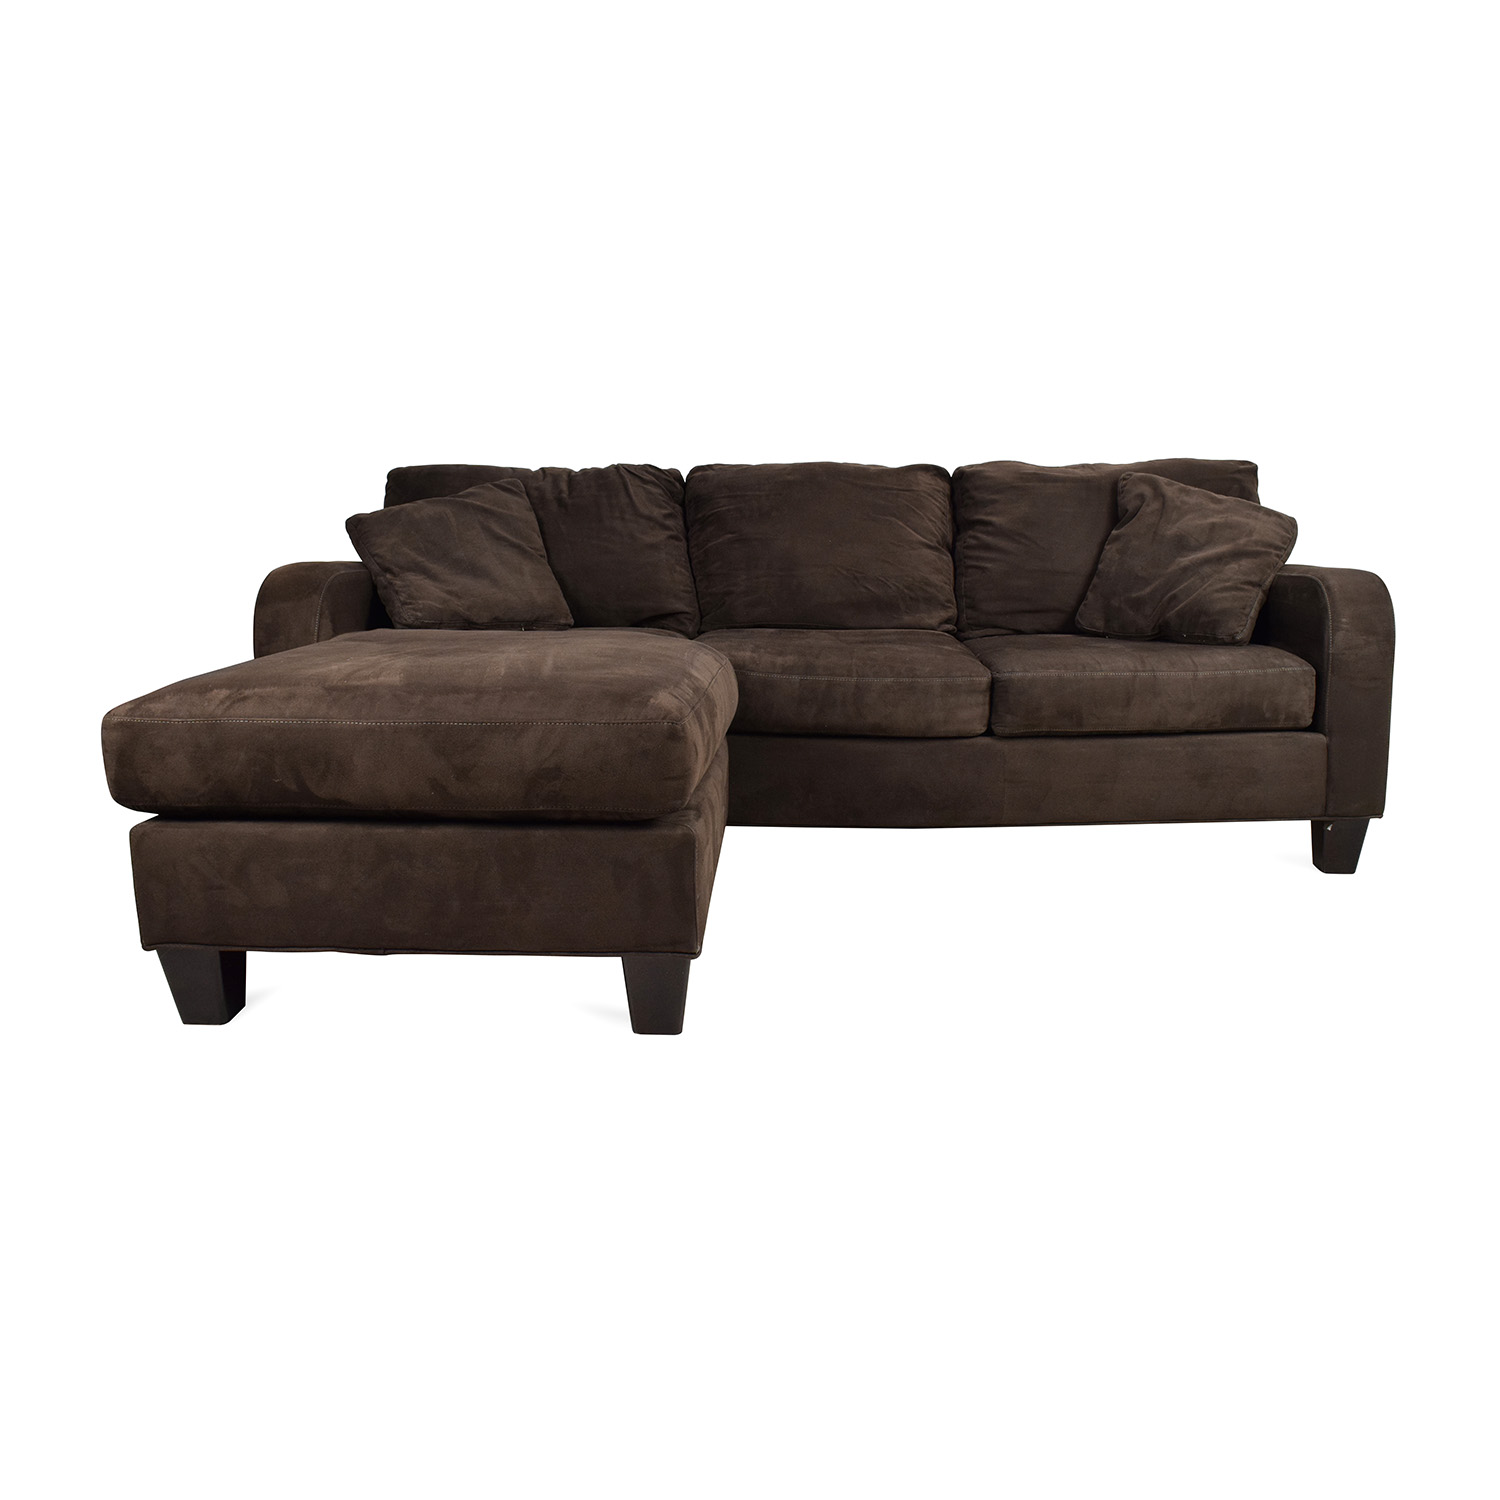 Genial 70% OFF   Cindy Crawford Home Cindy Crawford Bailey Microfiber Chaise Sofa  / Sofas